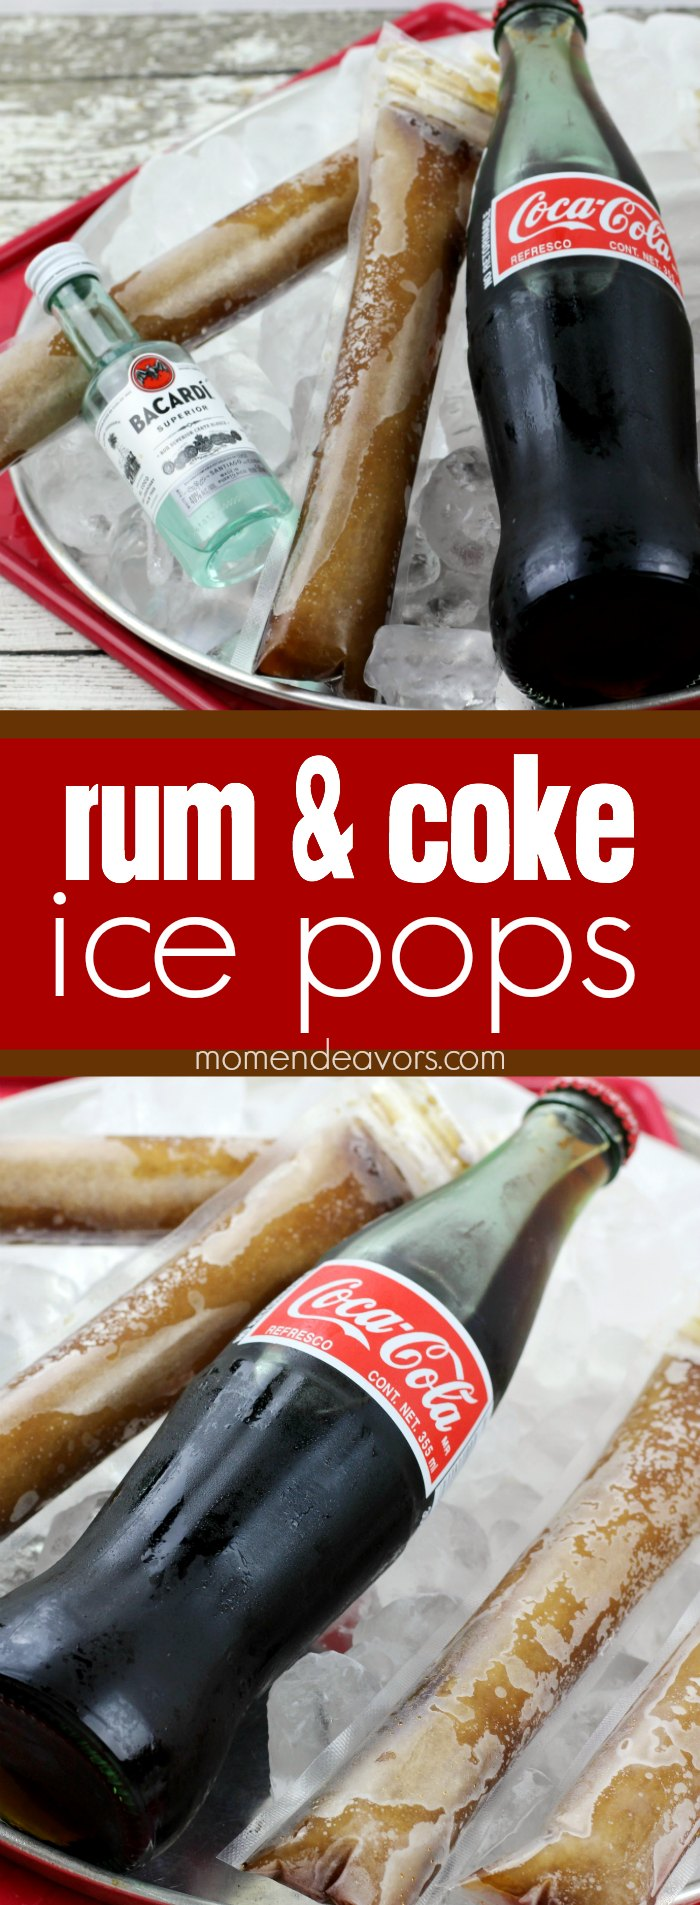 rum & coke ice pops recipe